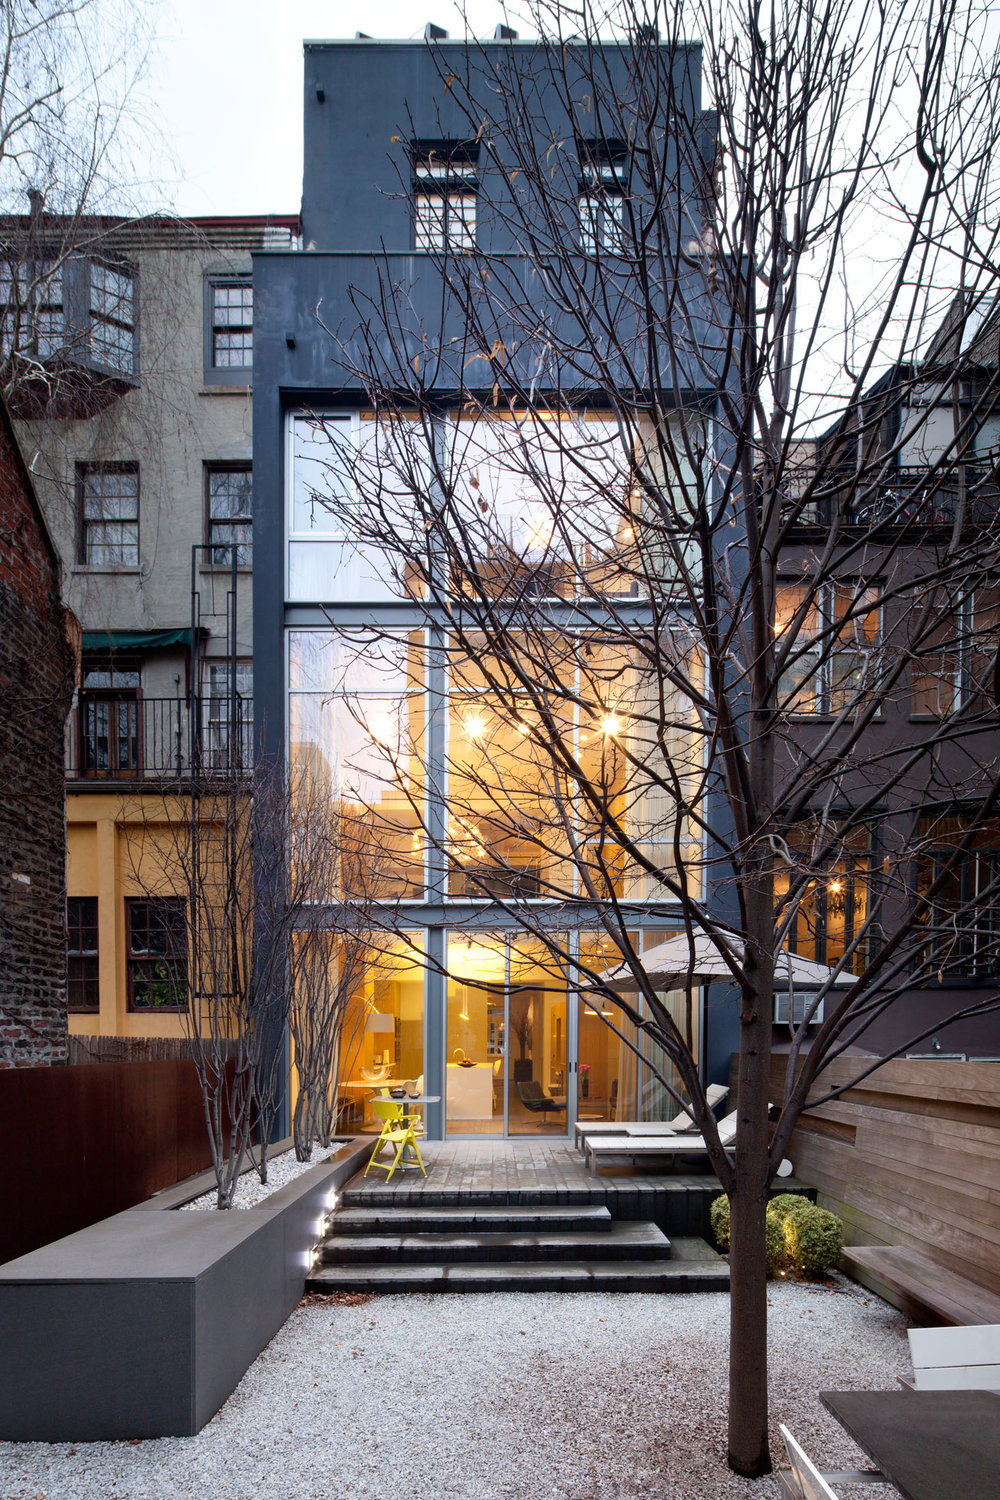 Private Residence  West Village, NYC  Robert Wilkanowski   View Full Project